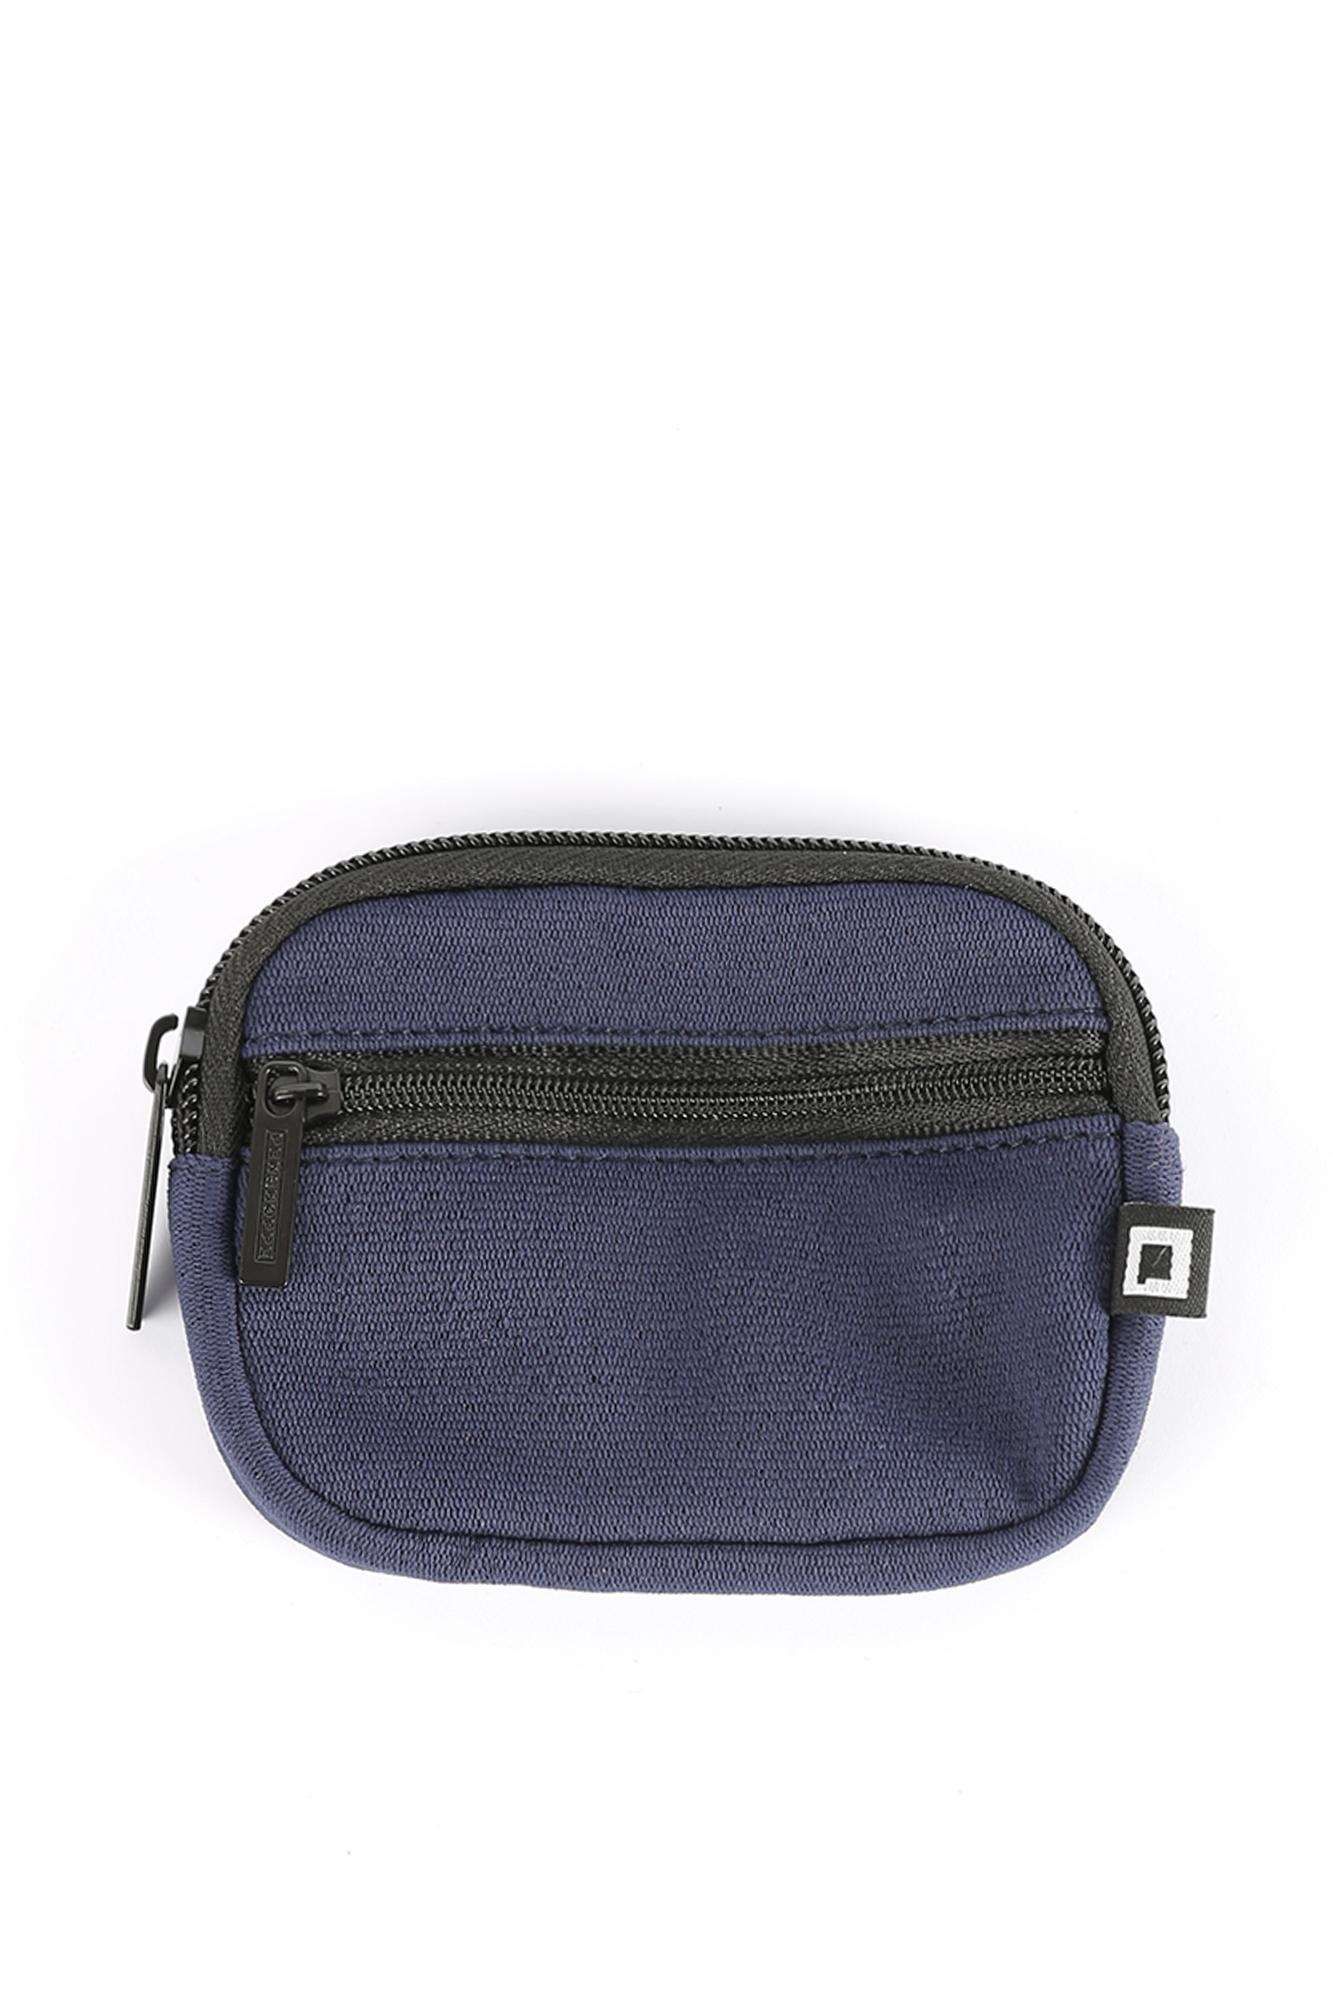 Penshoppe Bags for Men Philippines - Penshoppe Mens Fashion Bags for sale -  prices   reviews  c3460ef03f395